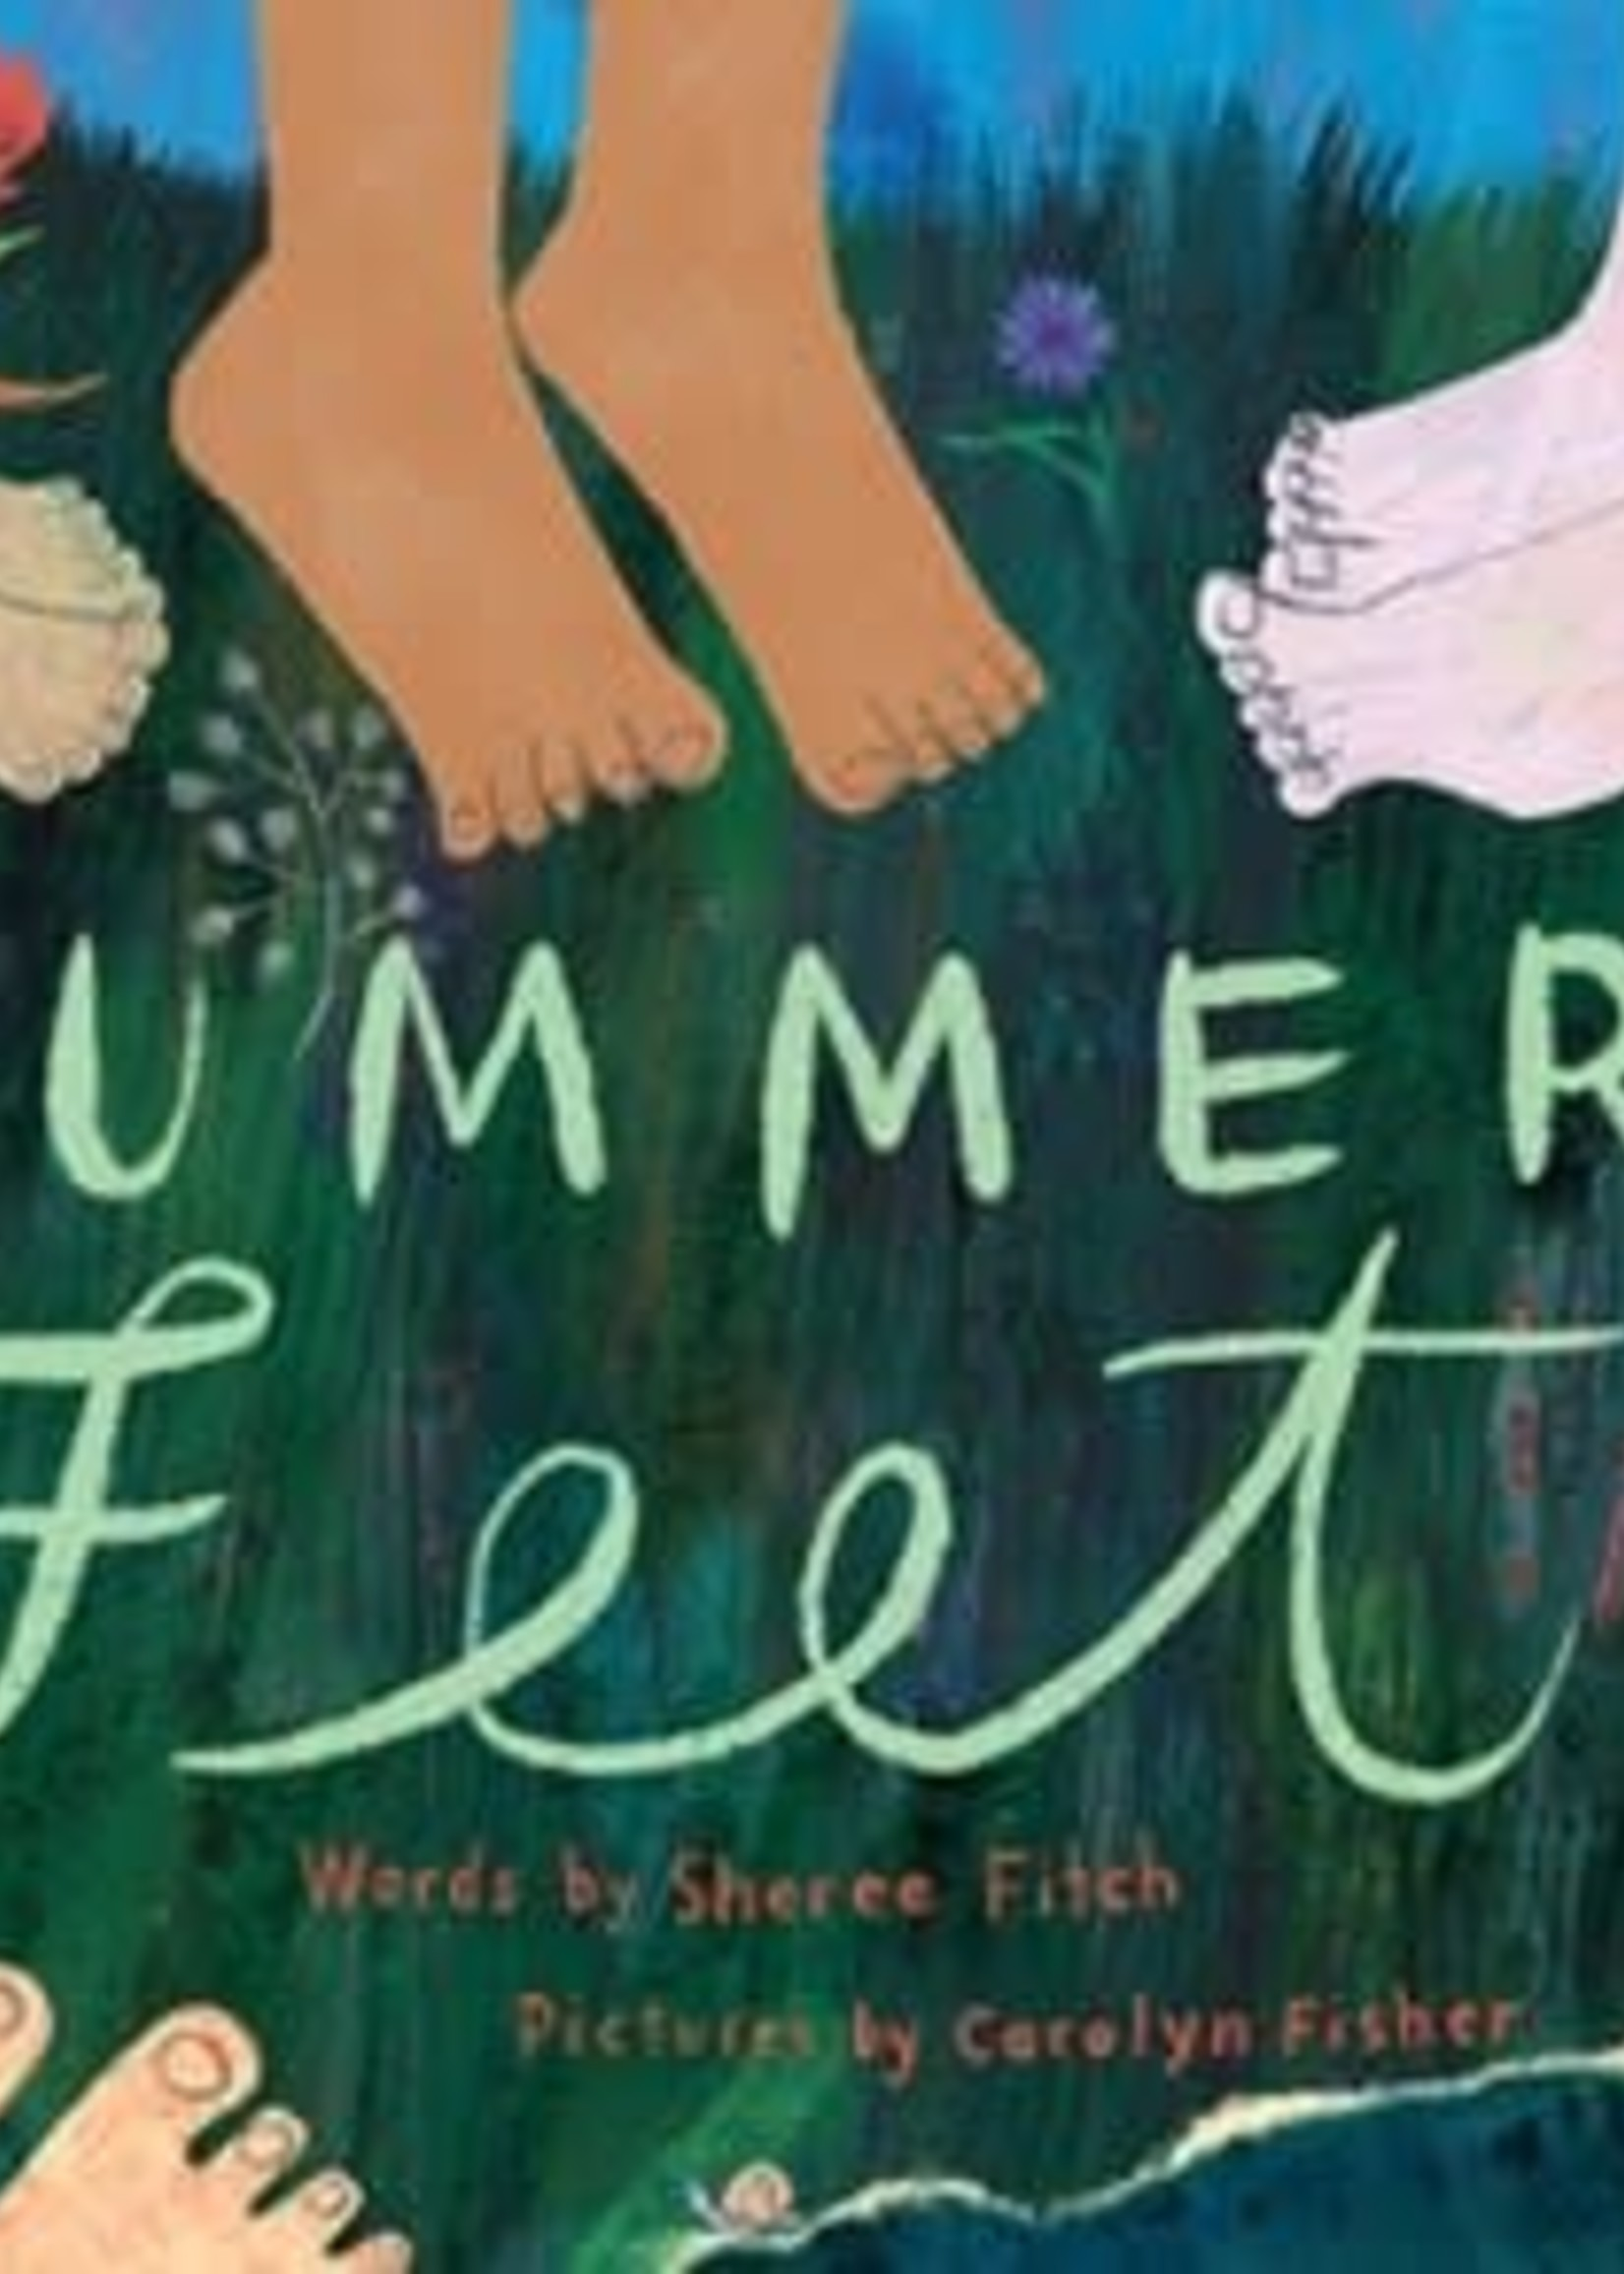 Summer Feet by Sheree Fitch